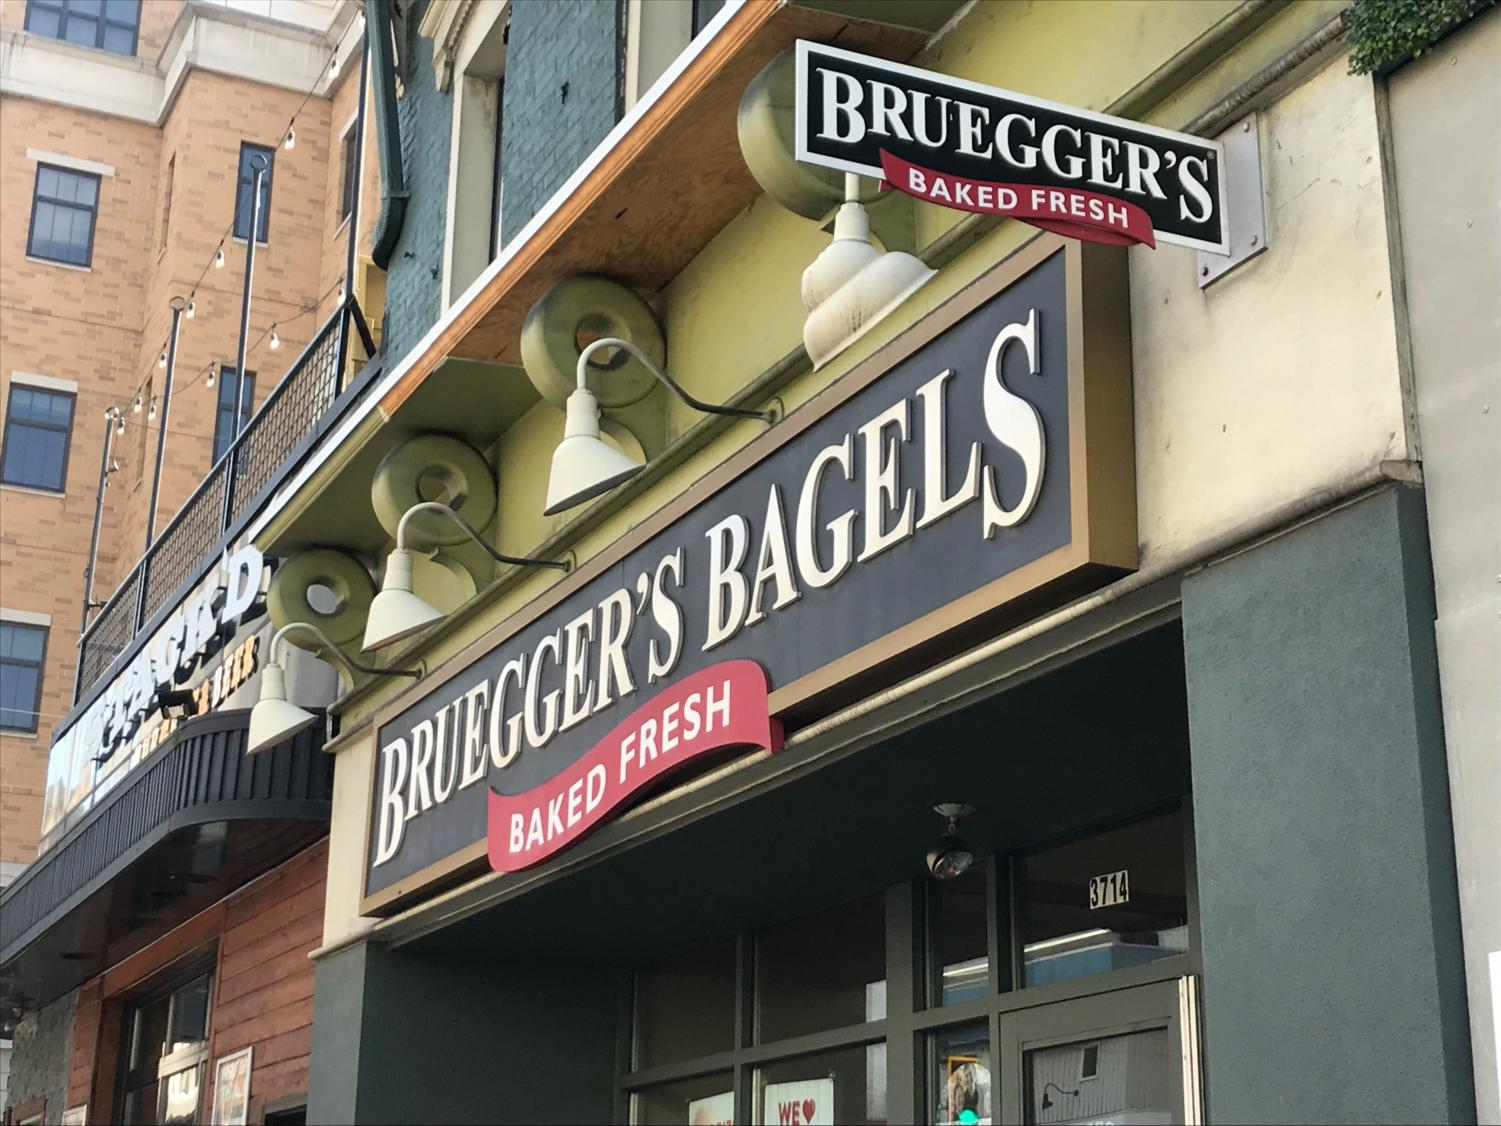 Bruegger's Bagels in Oakland closed for three days after being cited for several health code violations on August 10.